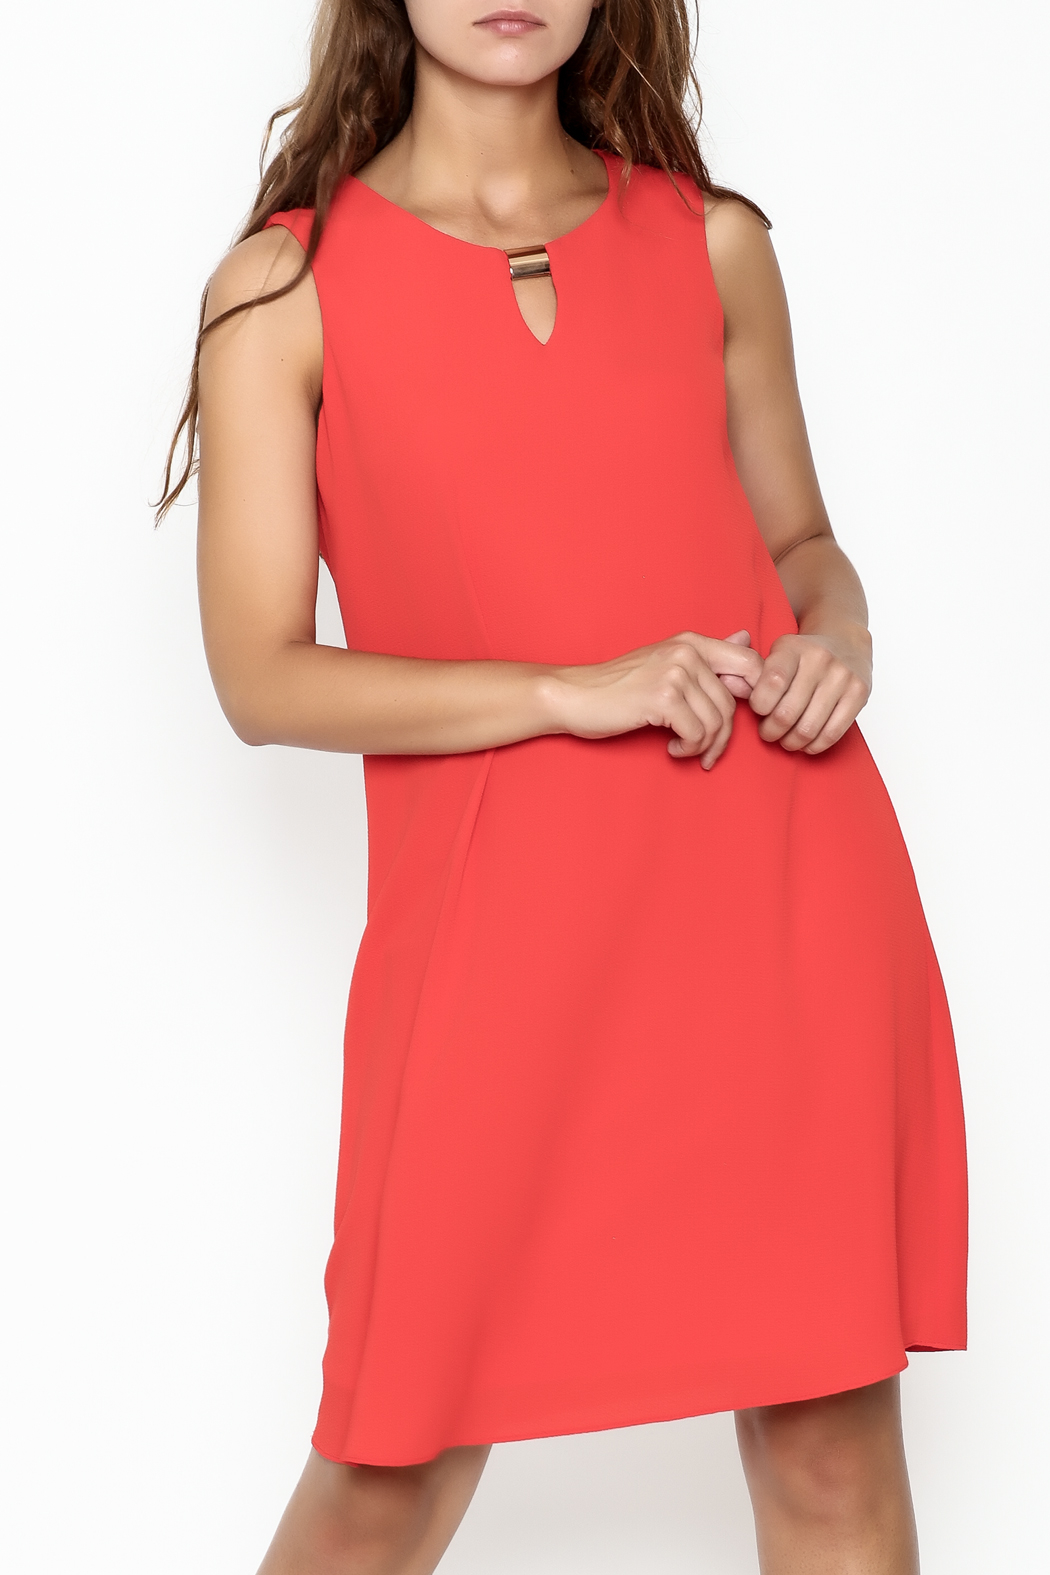 Frank Lyman Coral Shift Dress - Front Cropped Image